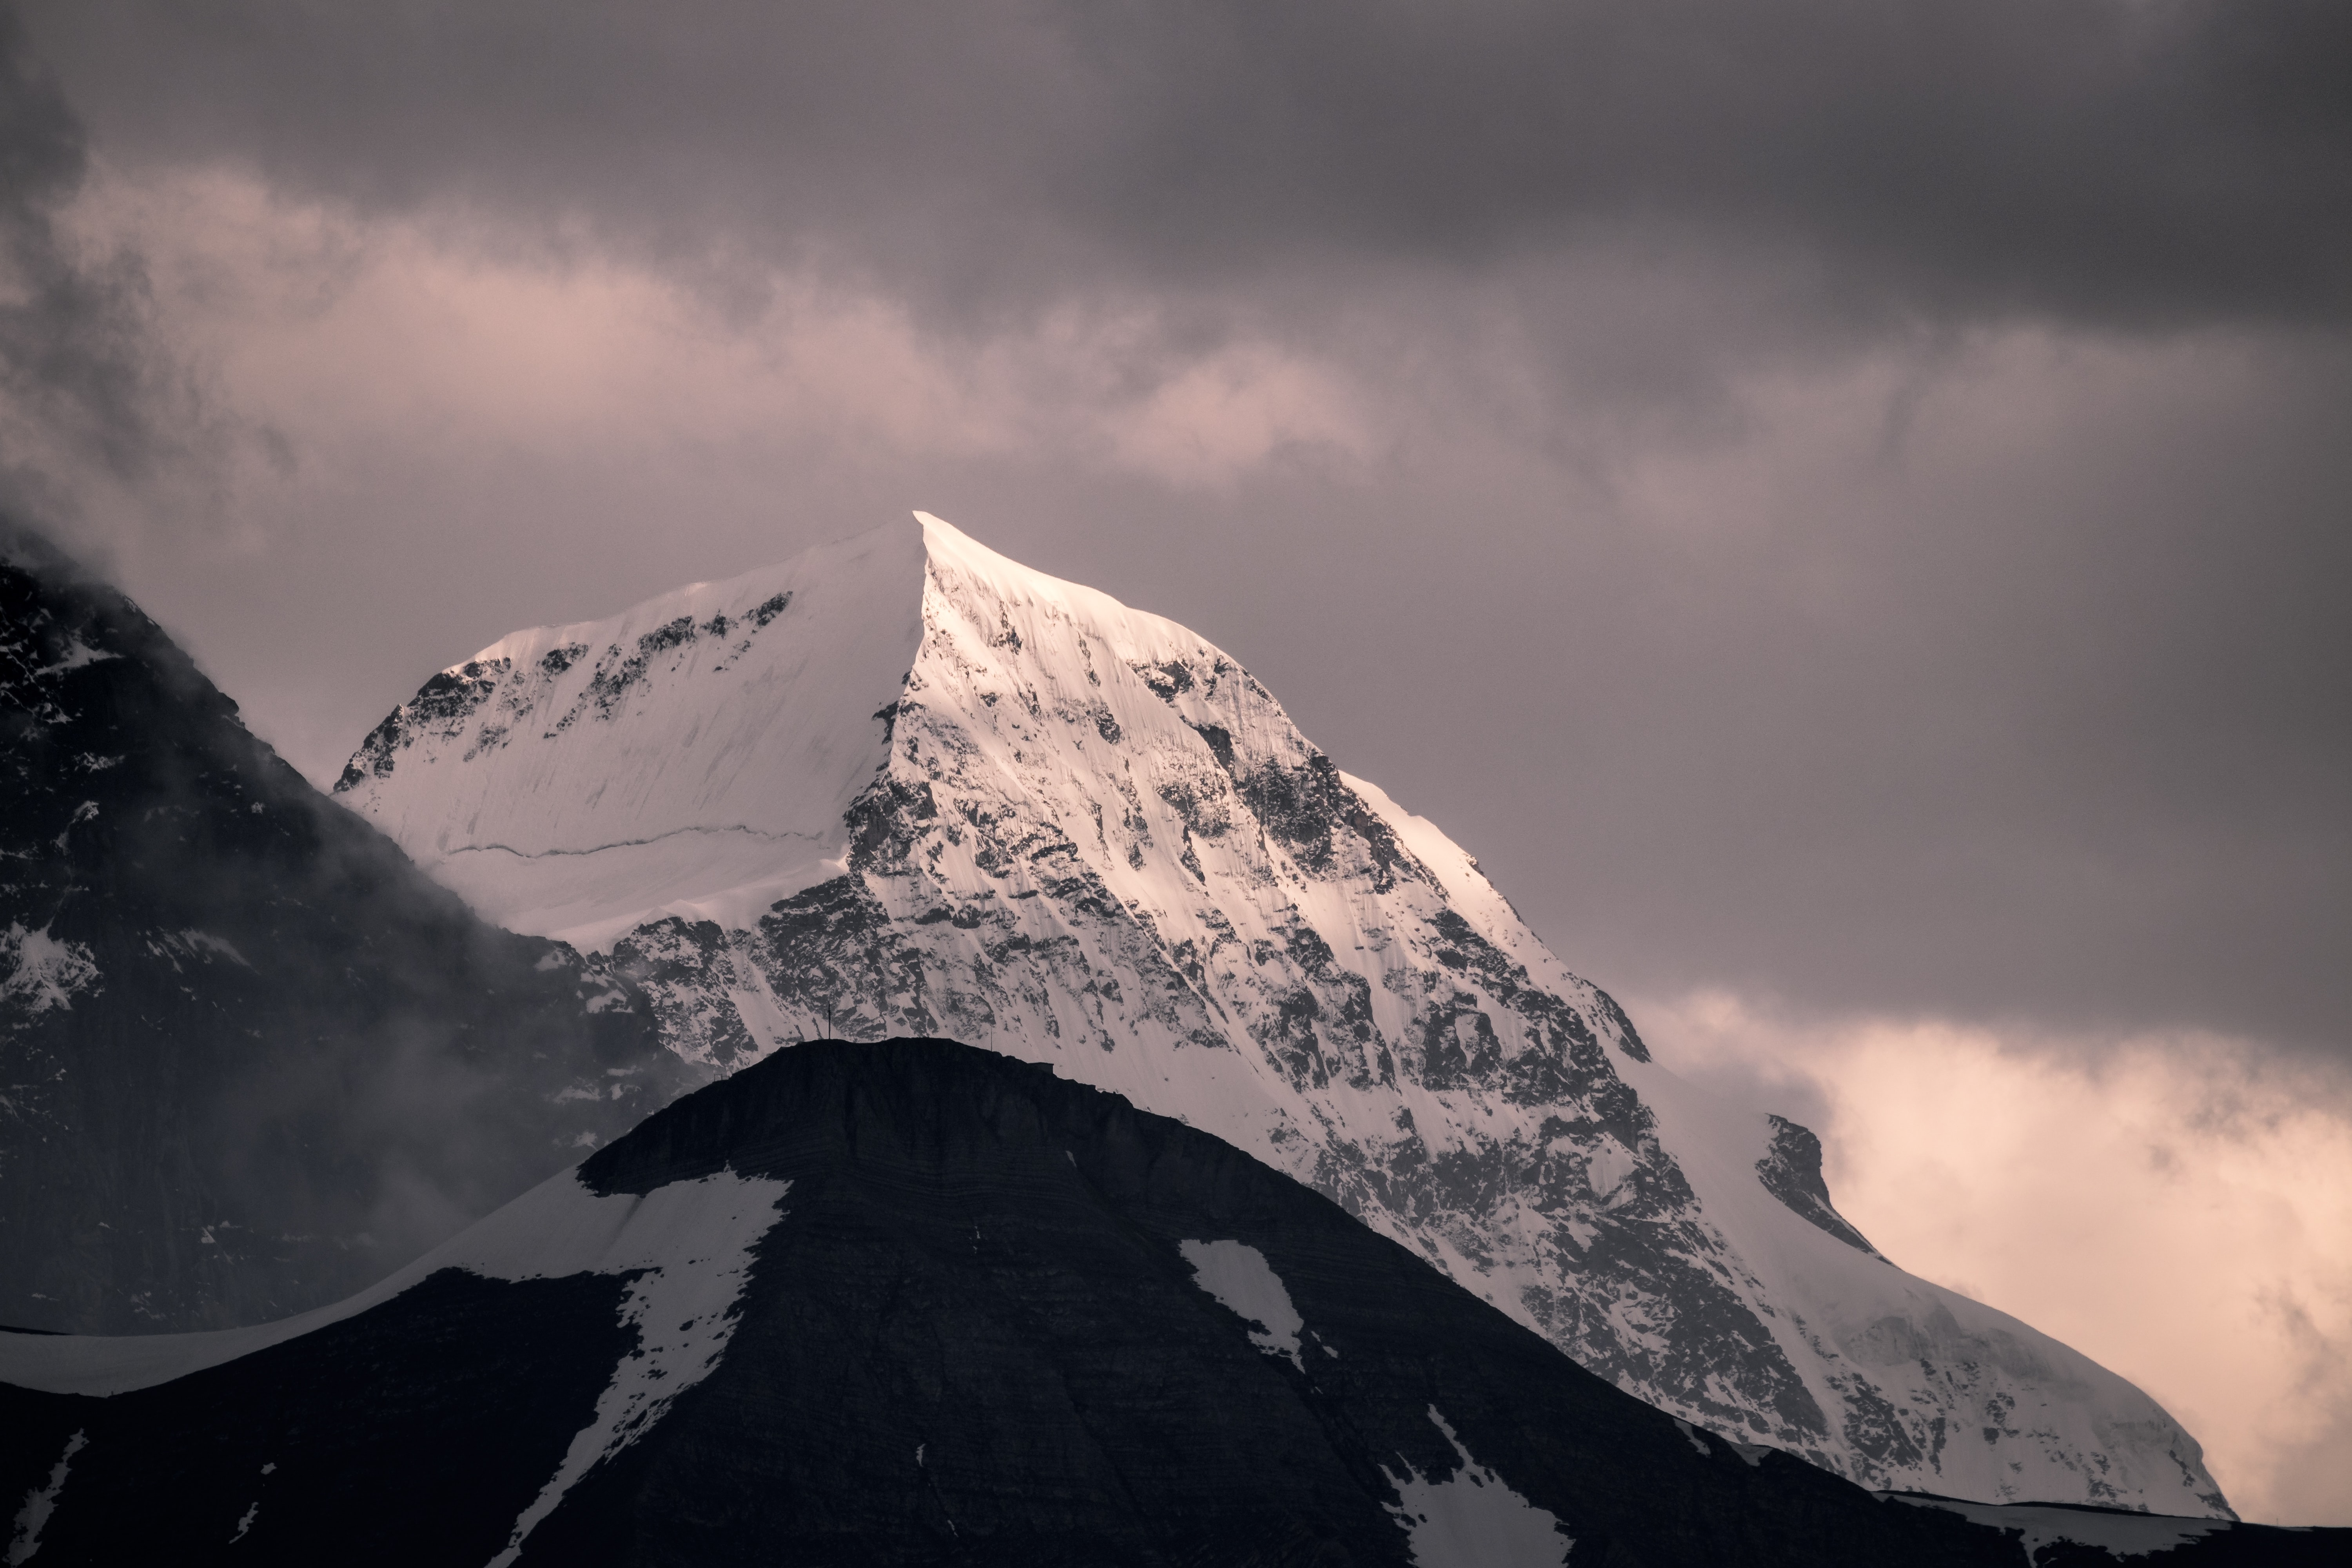 mountain covered by snow under white clouds at daytime